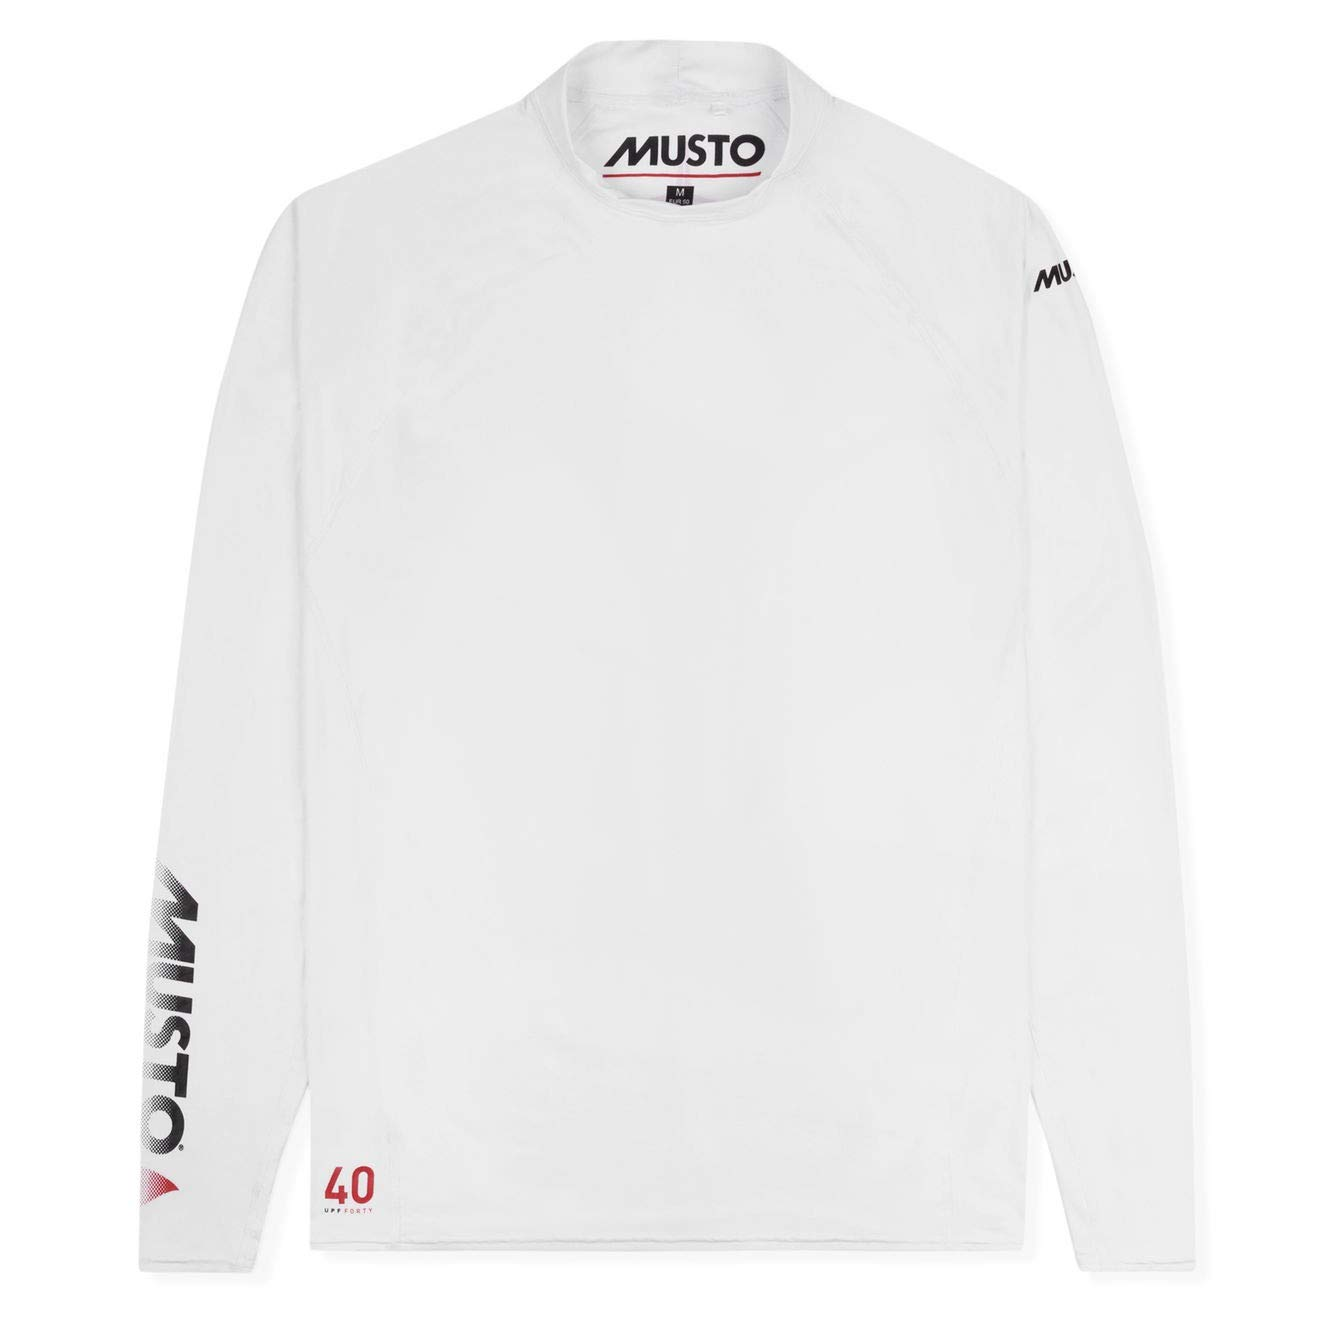 Musto Mens Insignia UV Fast Dry Long Sleeve T-Shirt White SUTS010